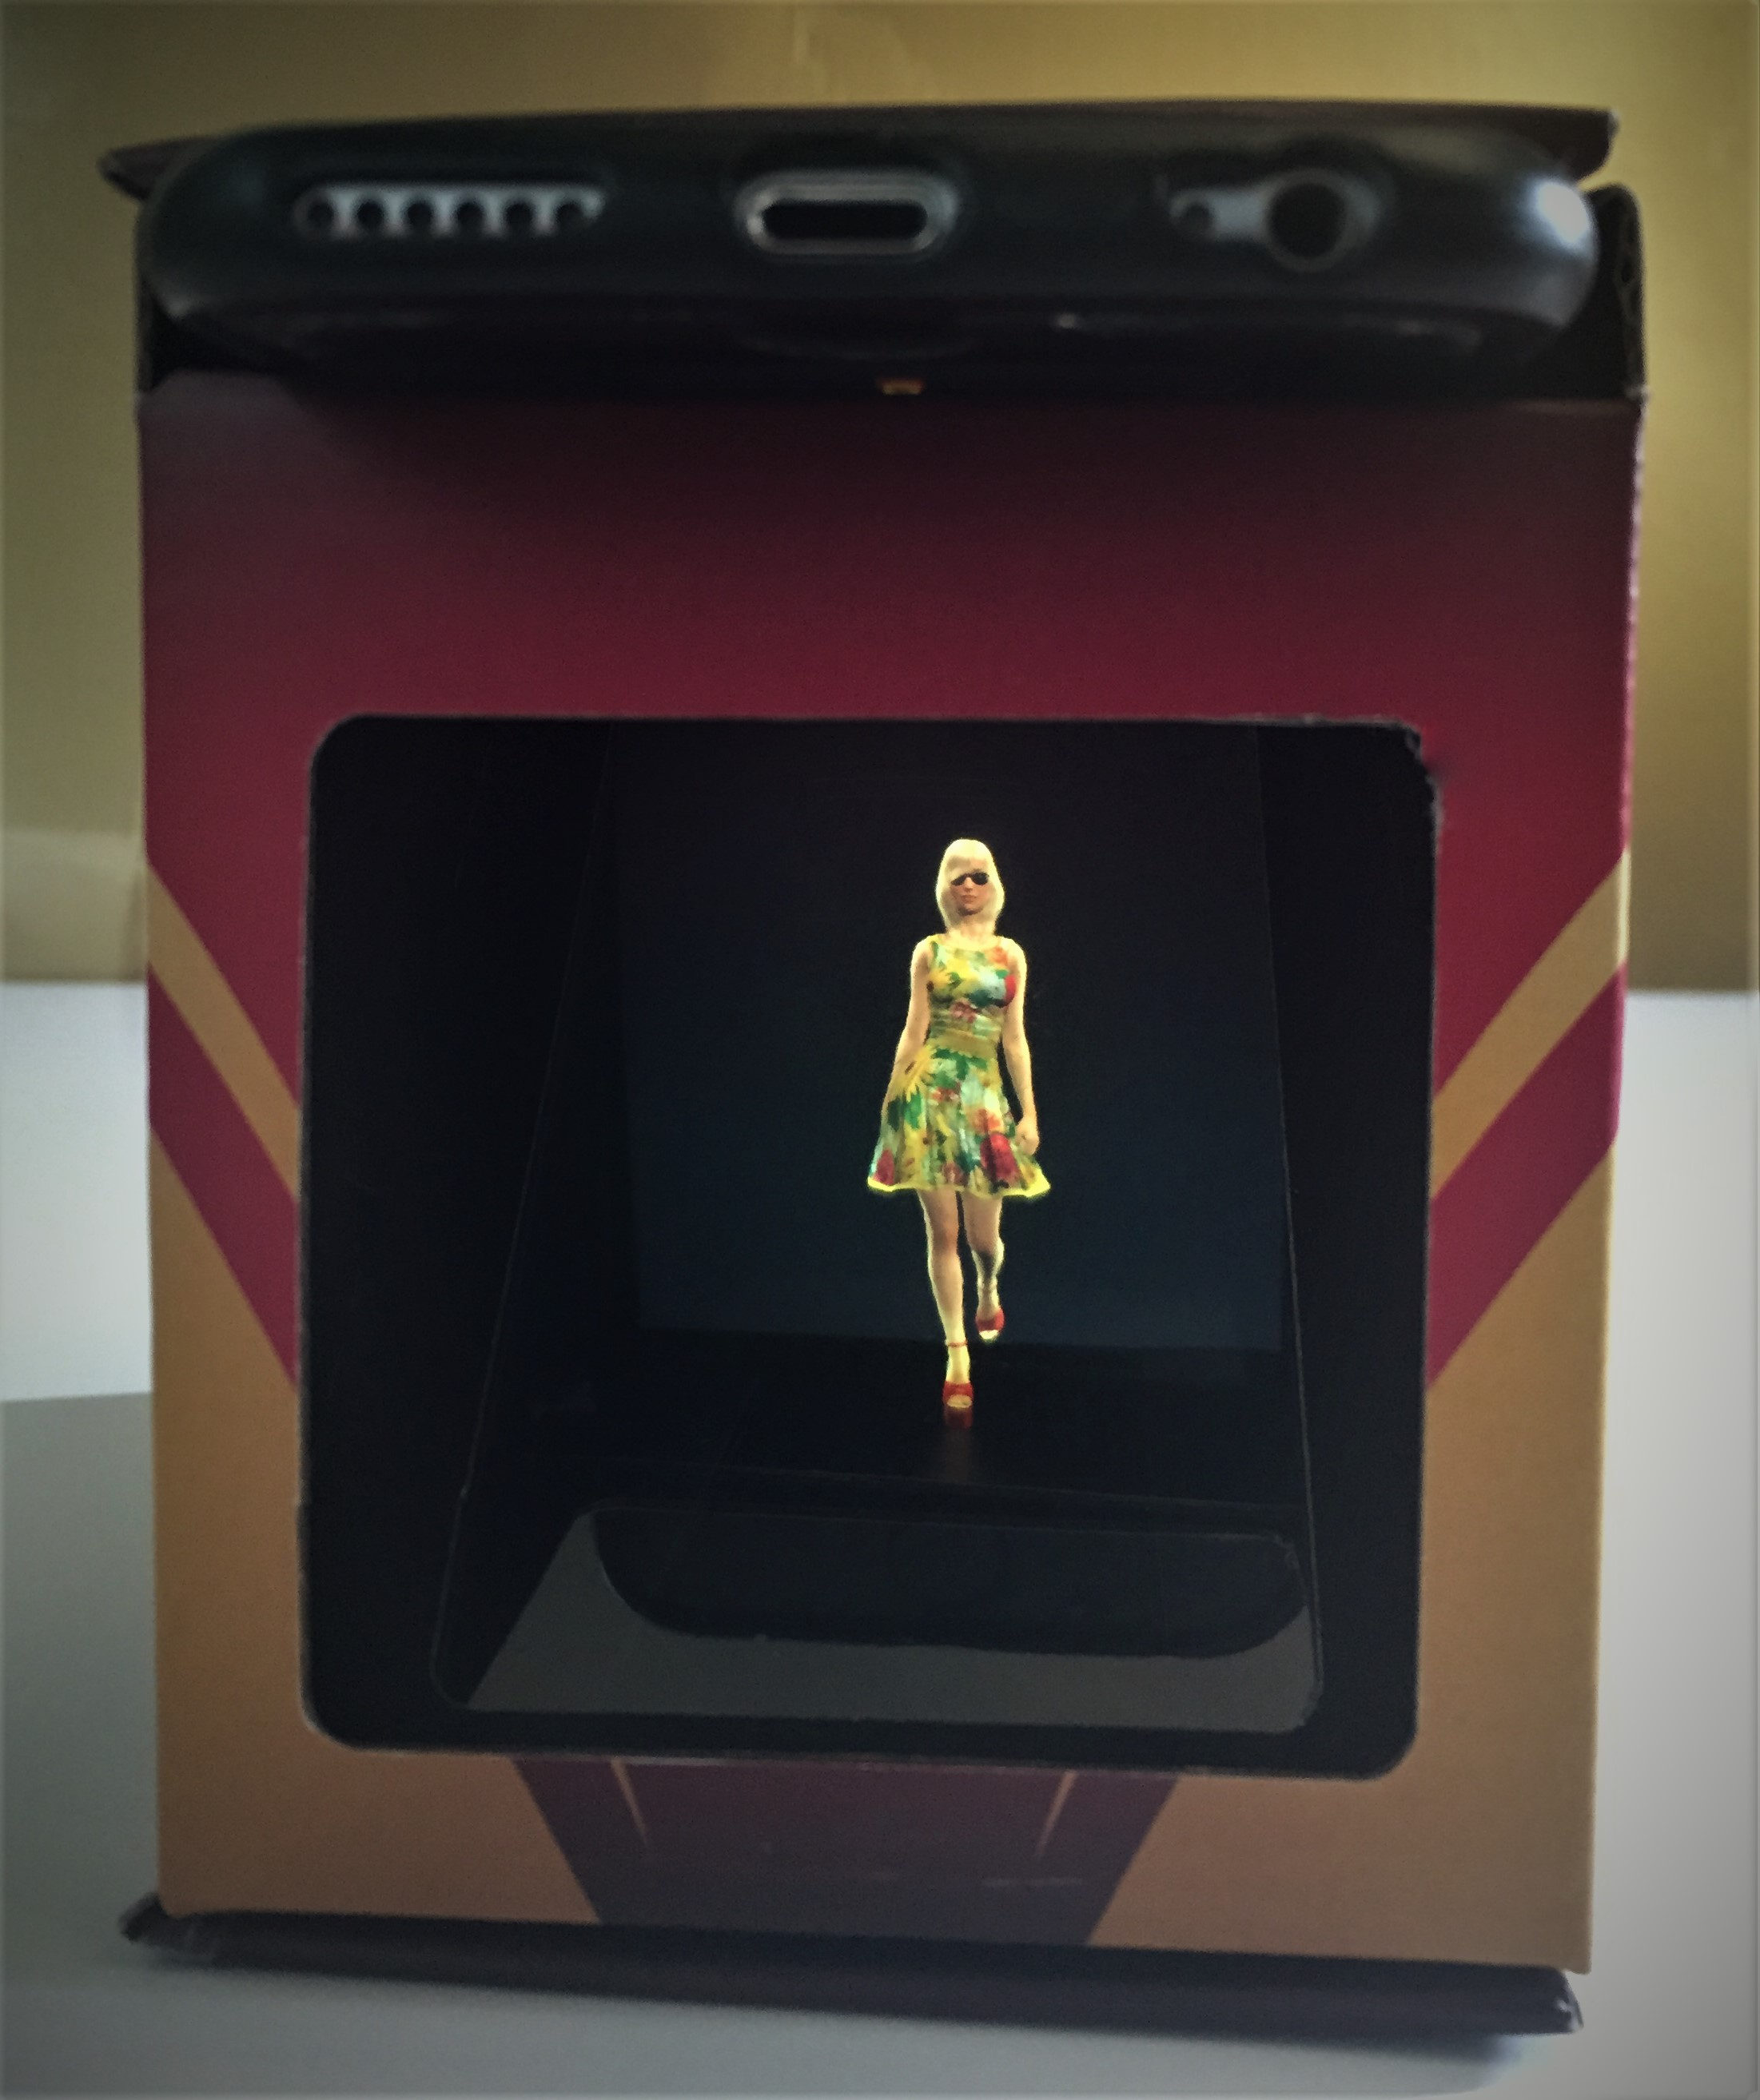 3D Holograms Holocube Displays for POS